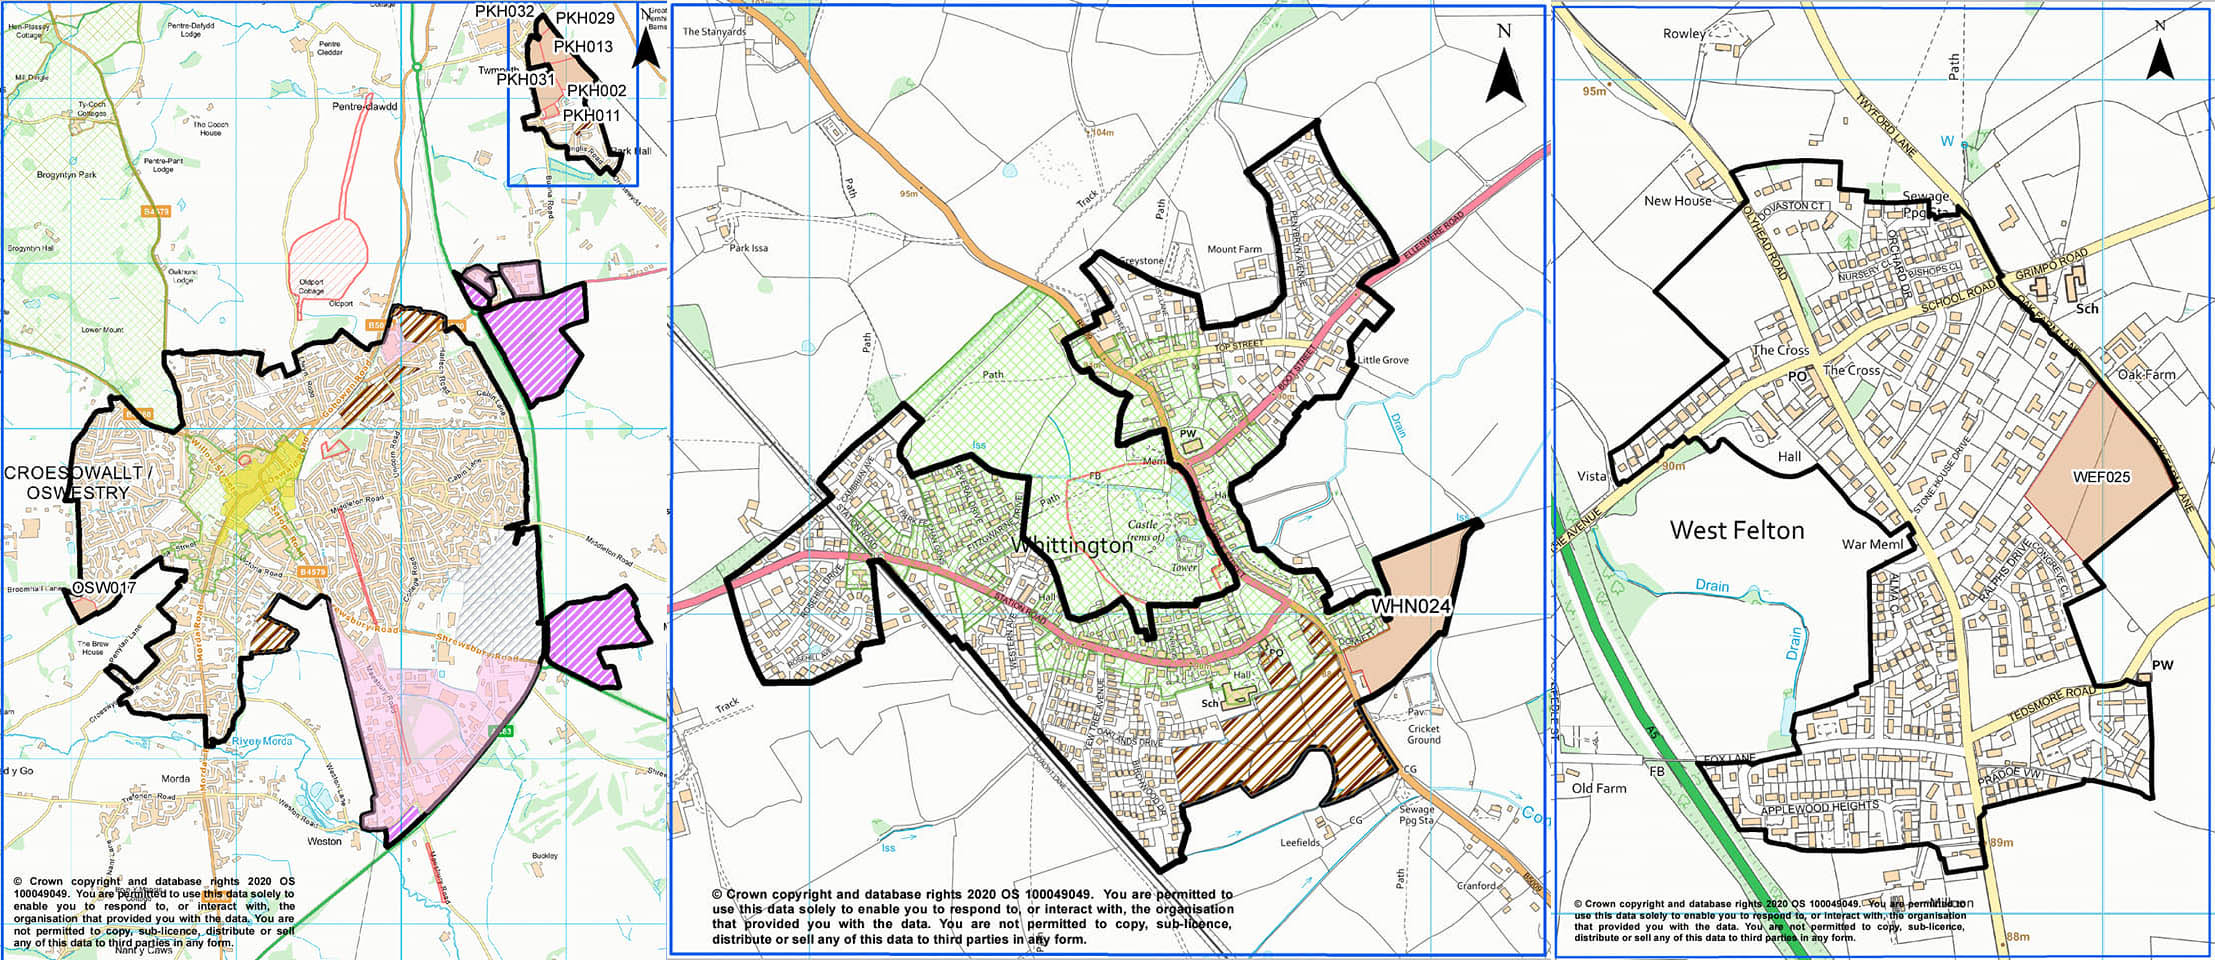 Sites proposed in Whittington, PArk Hall and West Felton in the local plan